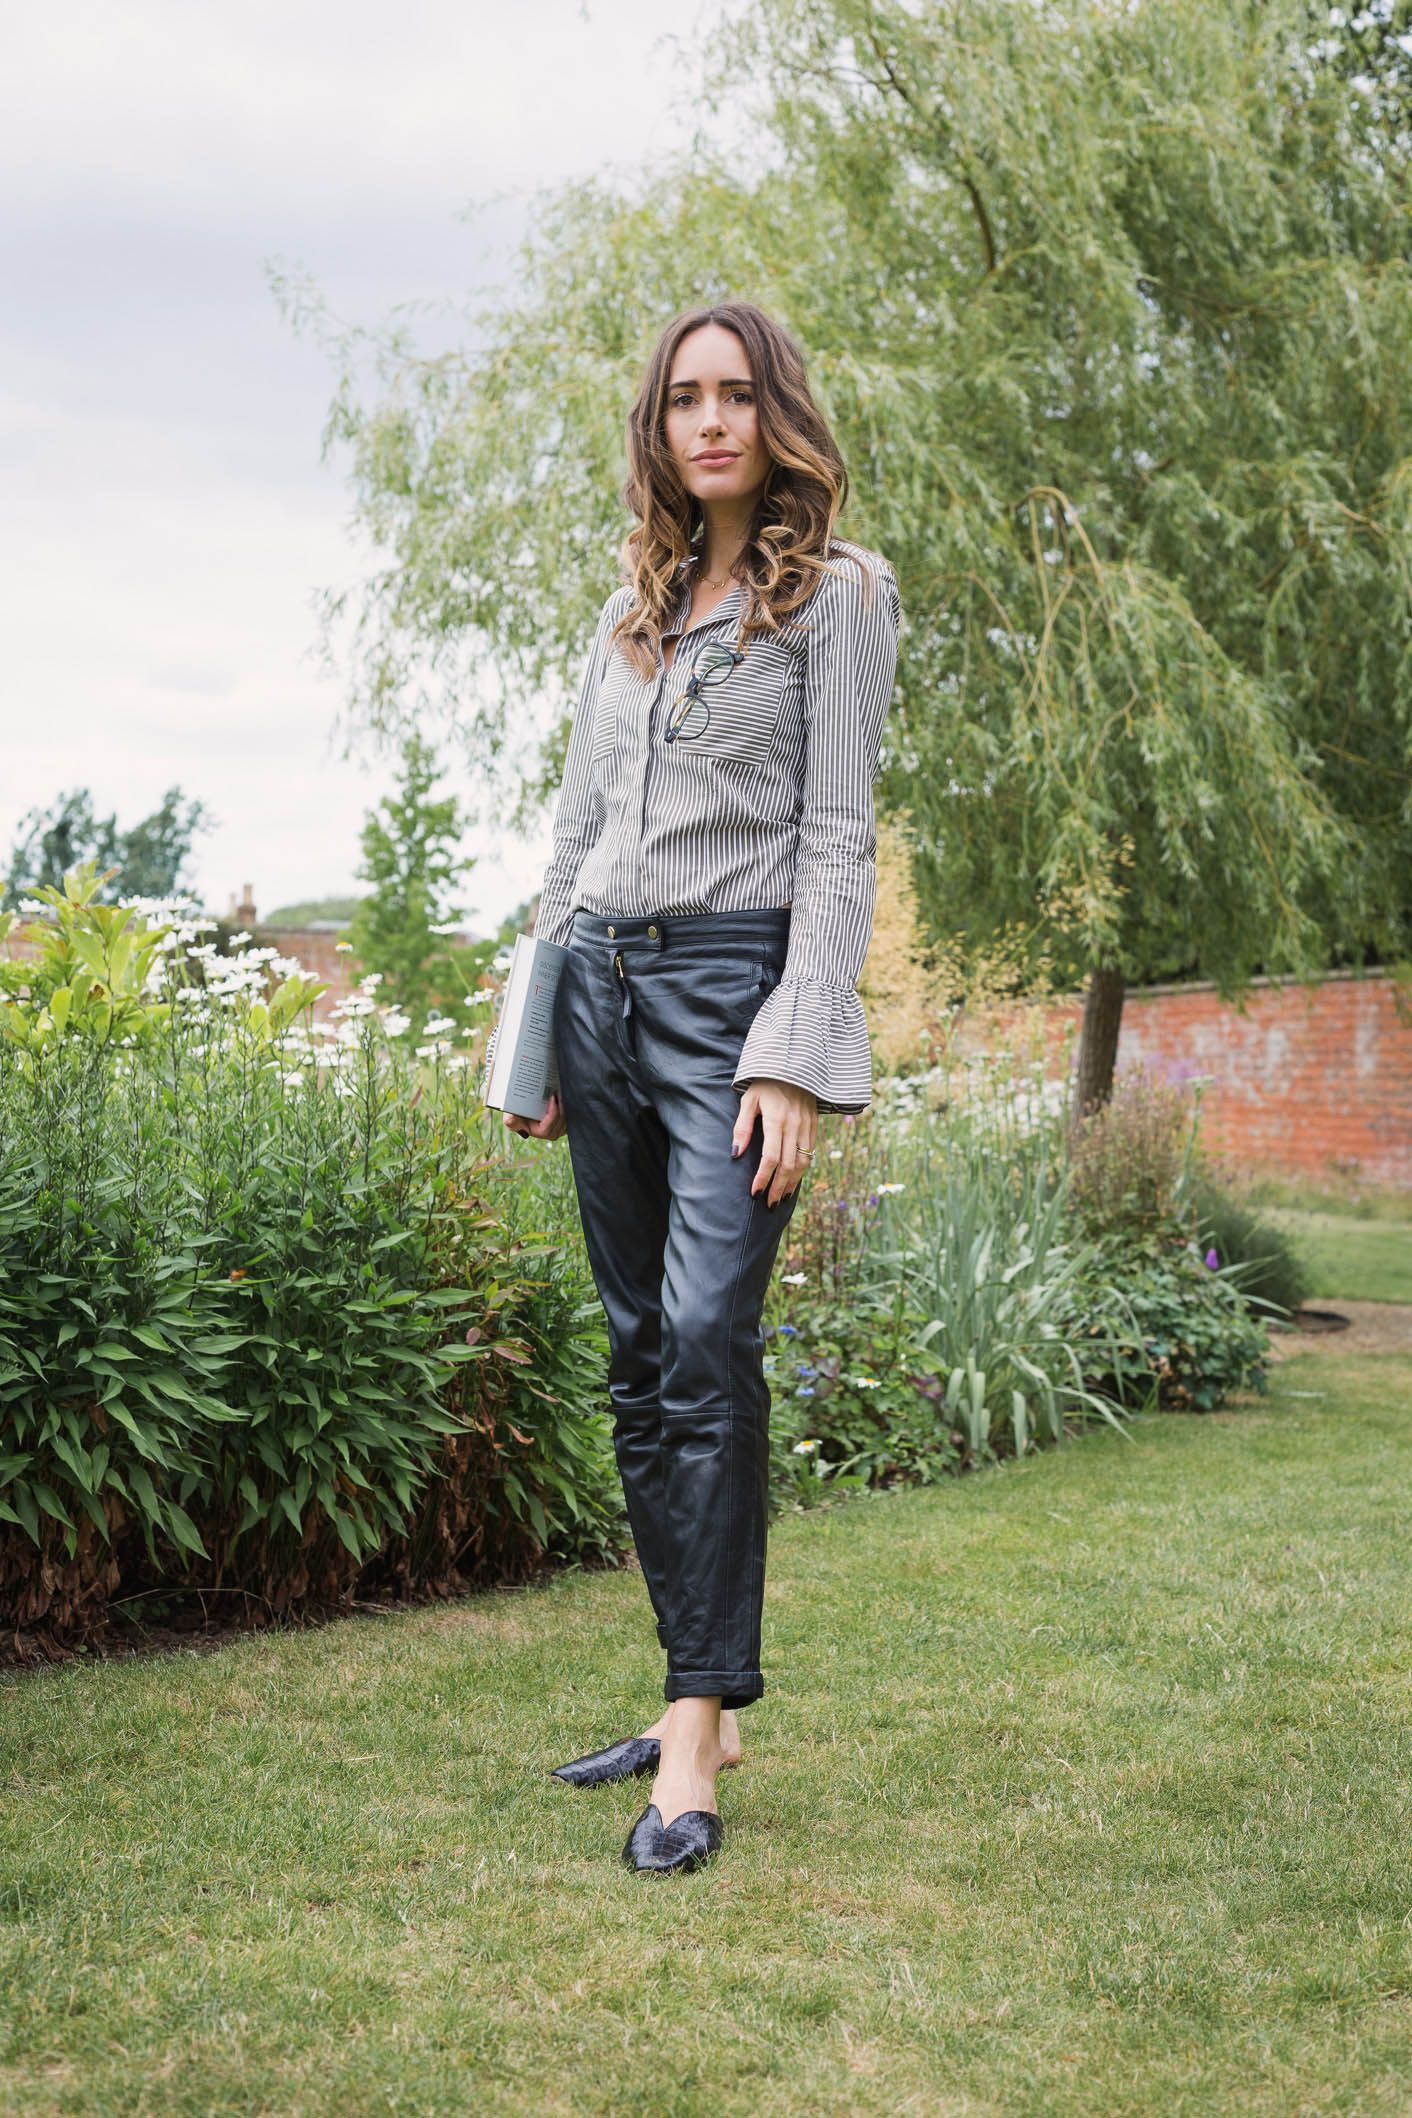 86298e26c37e5 Louise Roe showcases a chic work outfit featuring leather pants and a  striped blouse